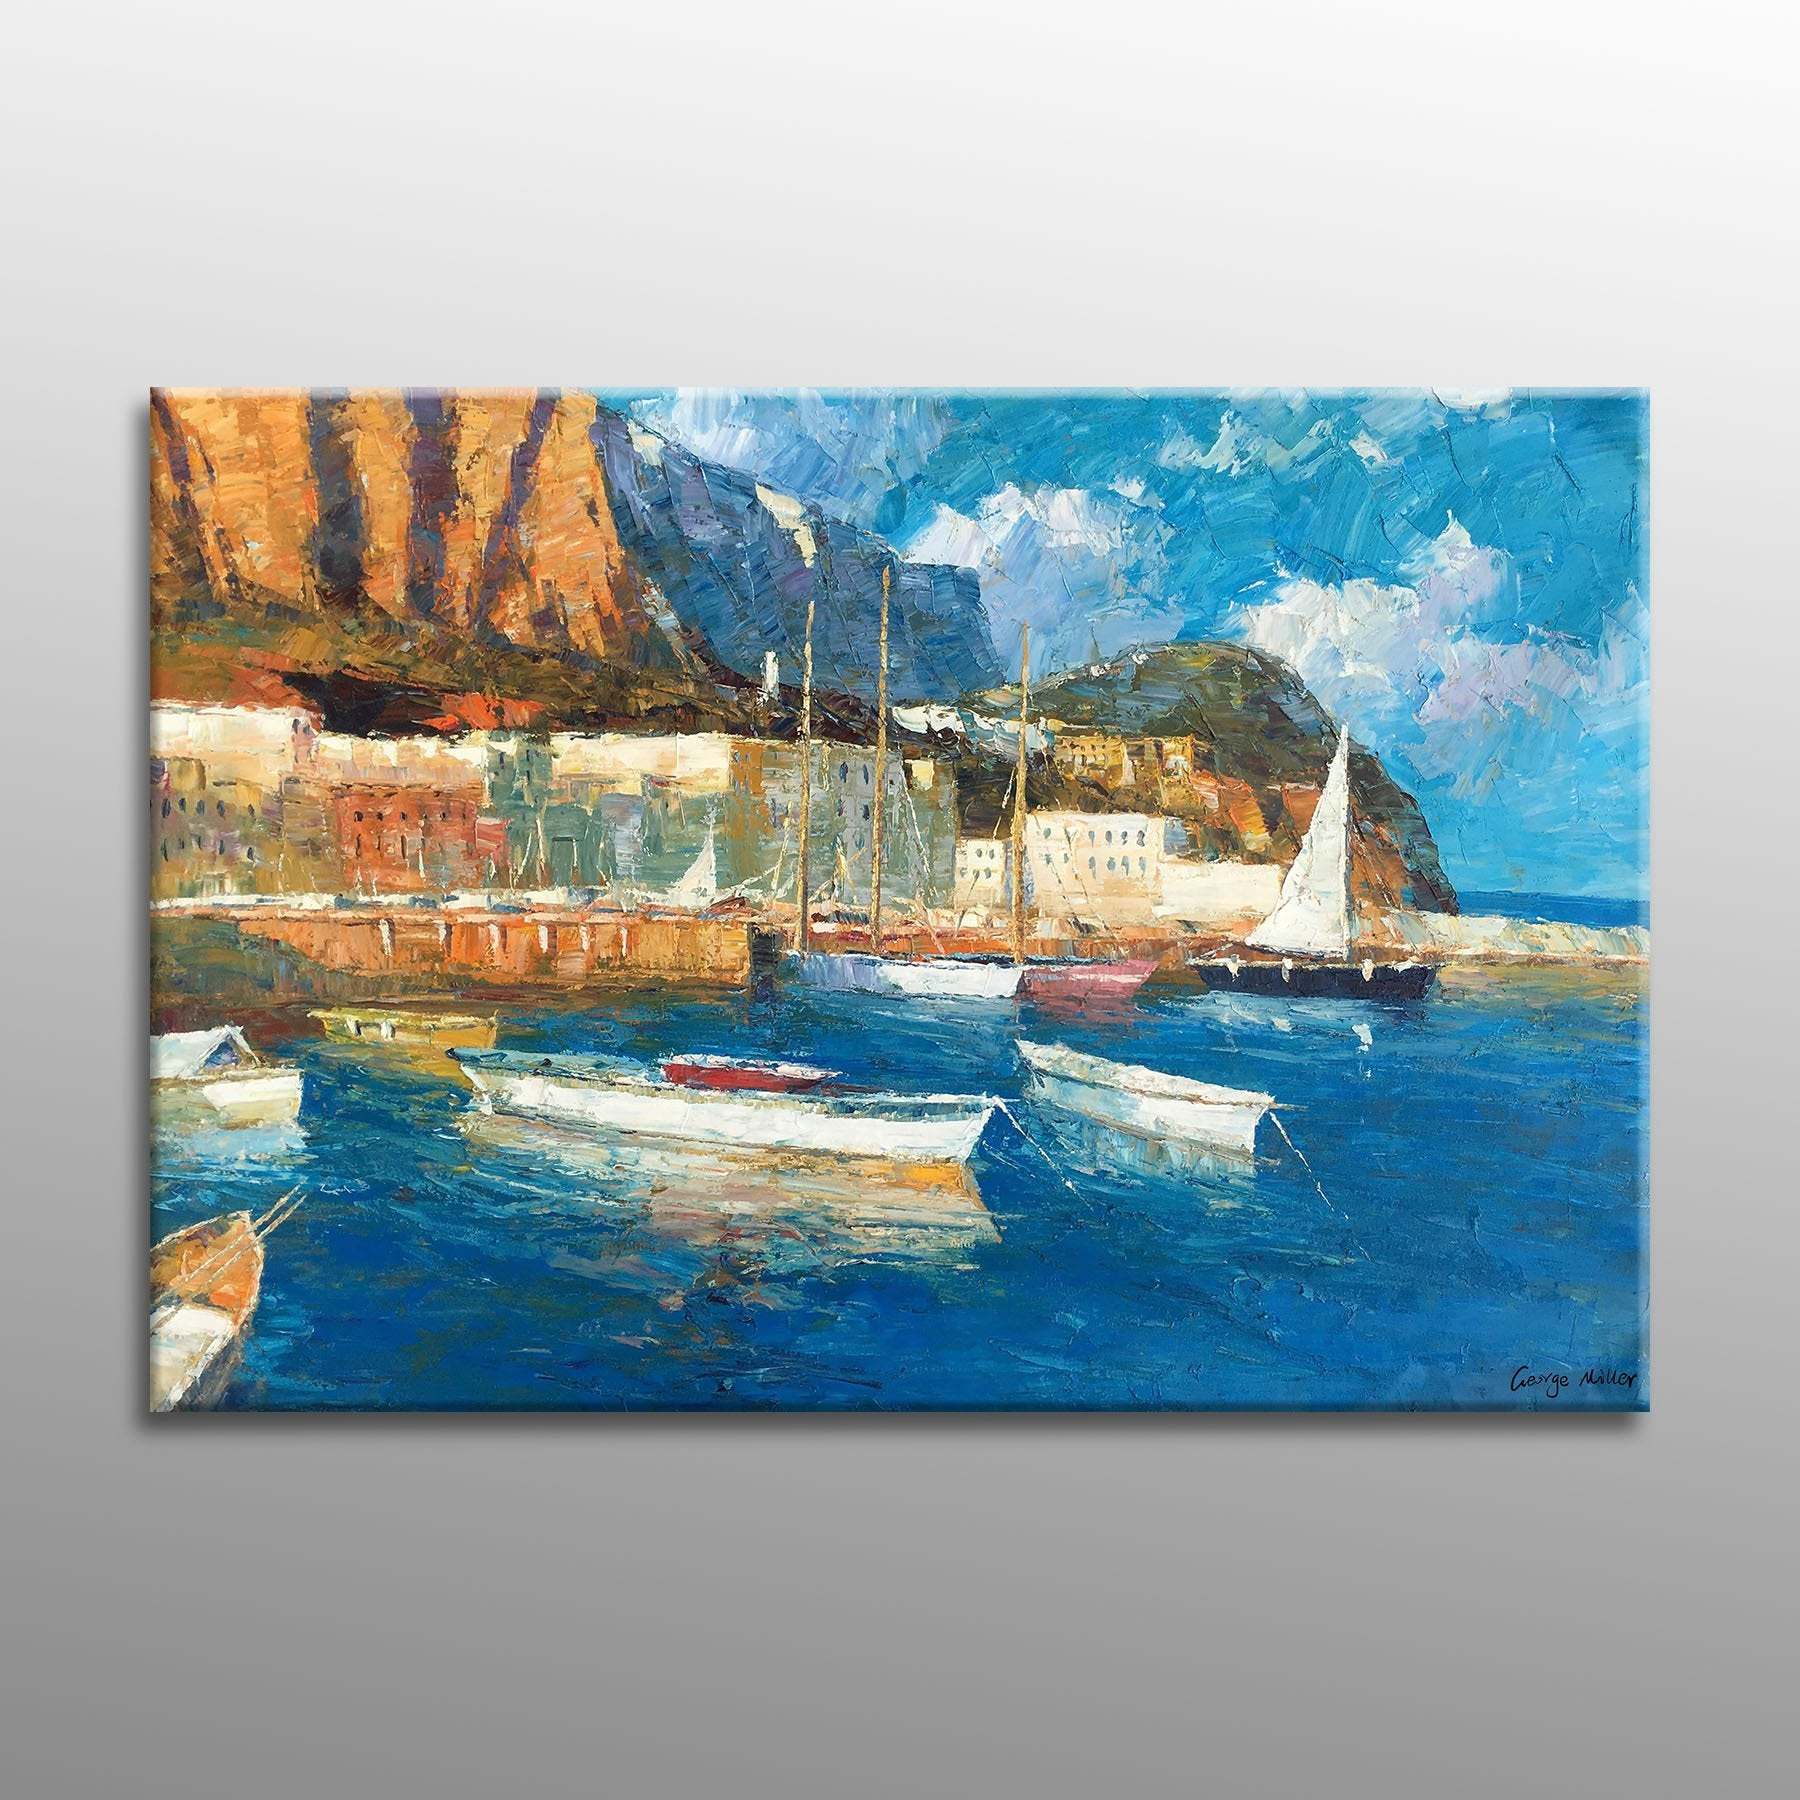 Oil Painting Seascape Habor Boats, Modern Art, Living Room Wall Decor, Abstract Canvas Art, Oil Painting Original, Seascape Painting